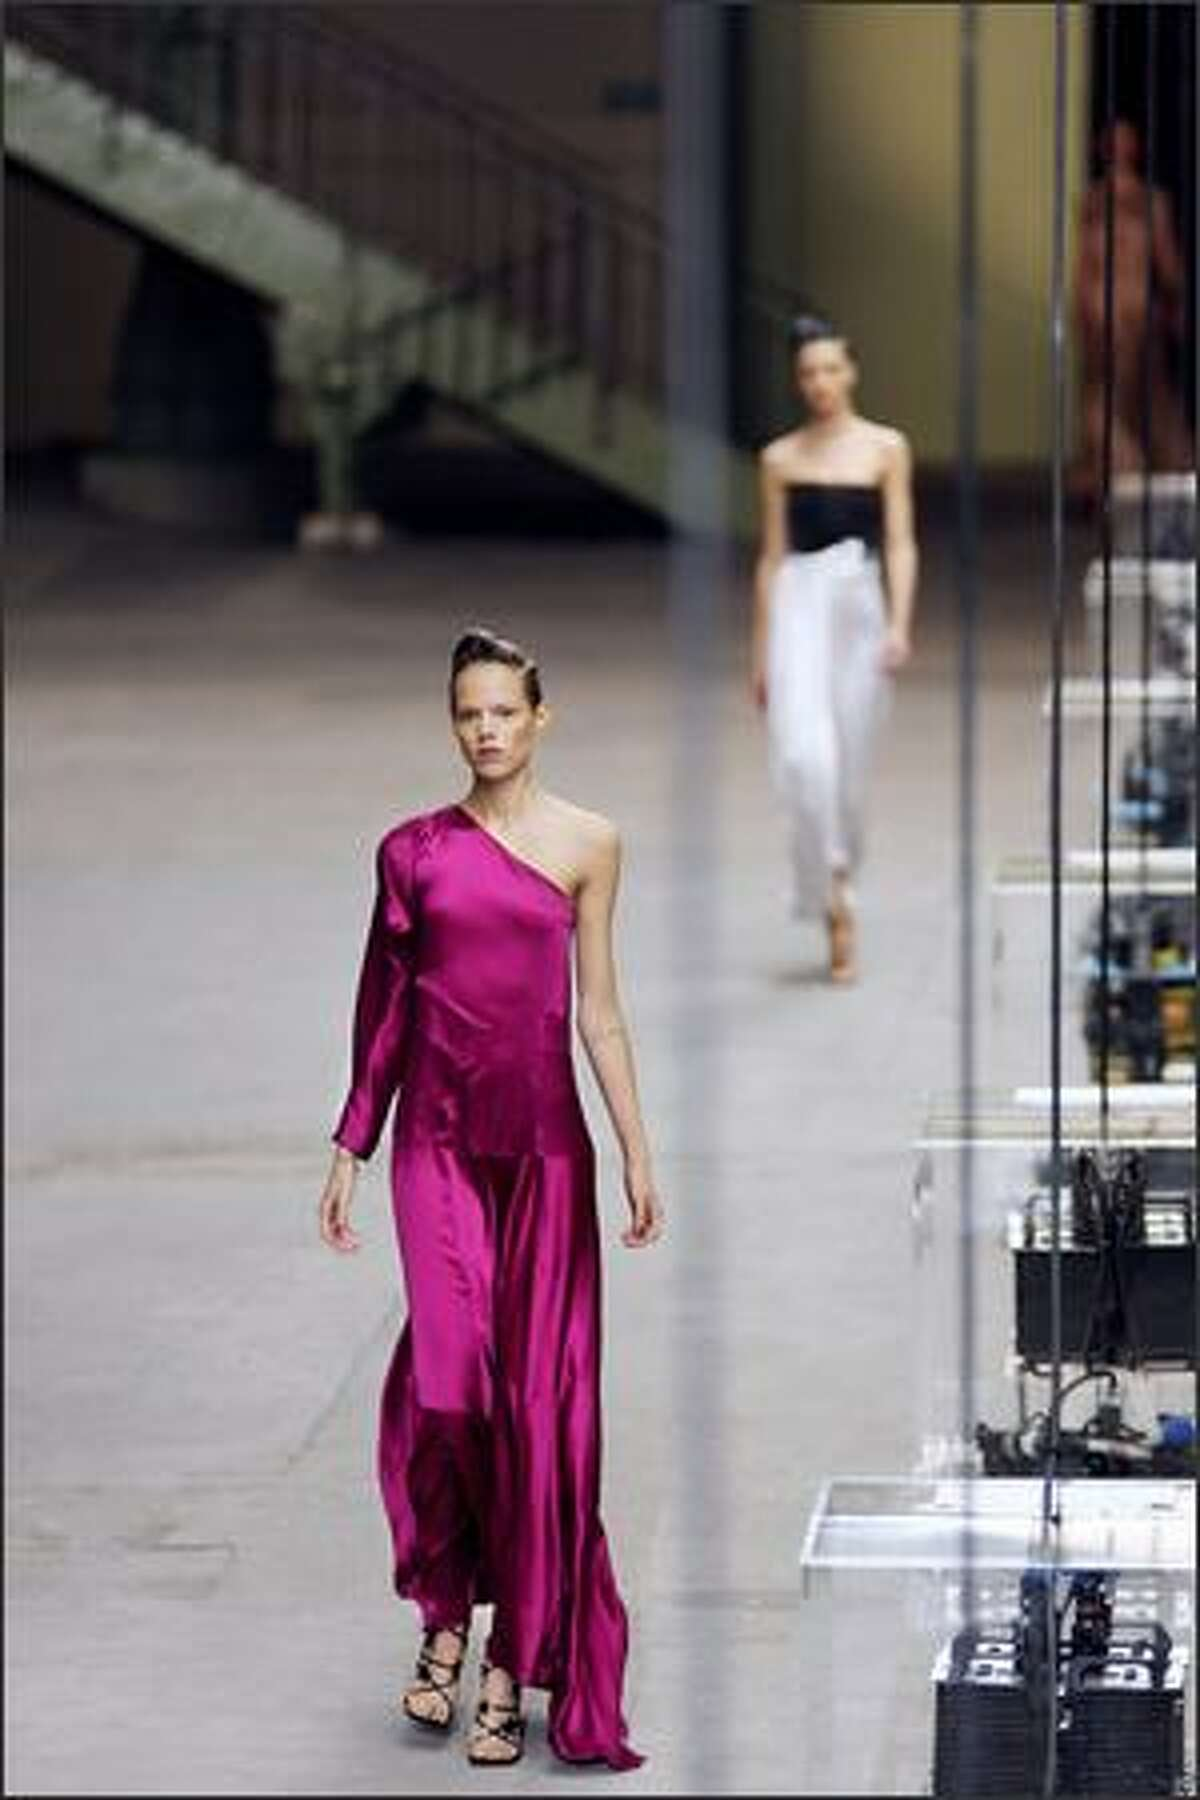 A model presents a creation by Italian designer Stefano Pilati for Yves Saint Laurent during Spring/Summer 2008 ready-to-wear collection show in Paris.